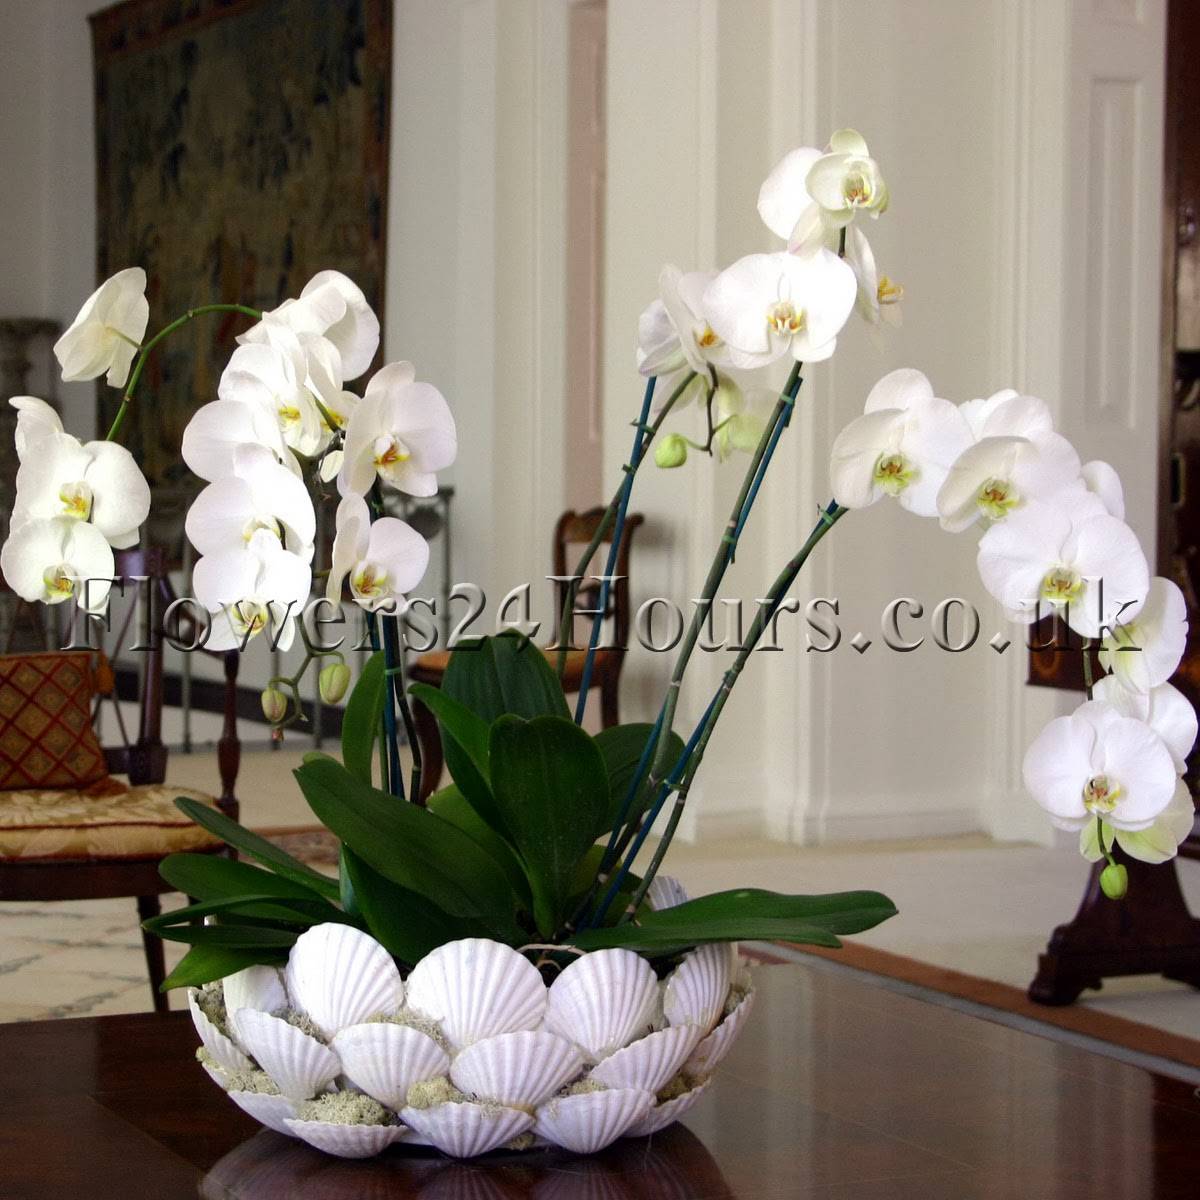 new inspiring selection of flower arrangements from uk: day orchid decor